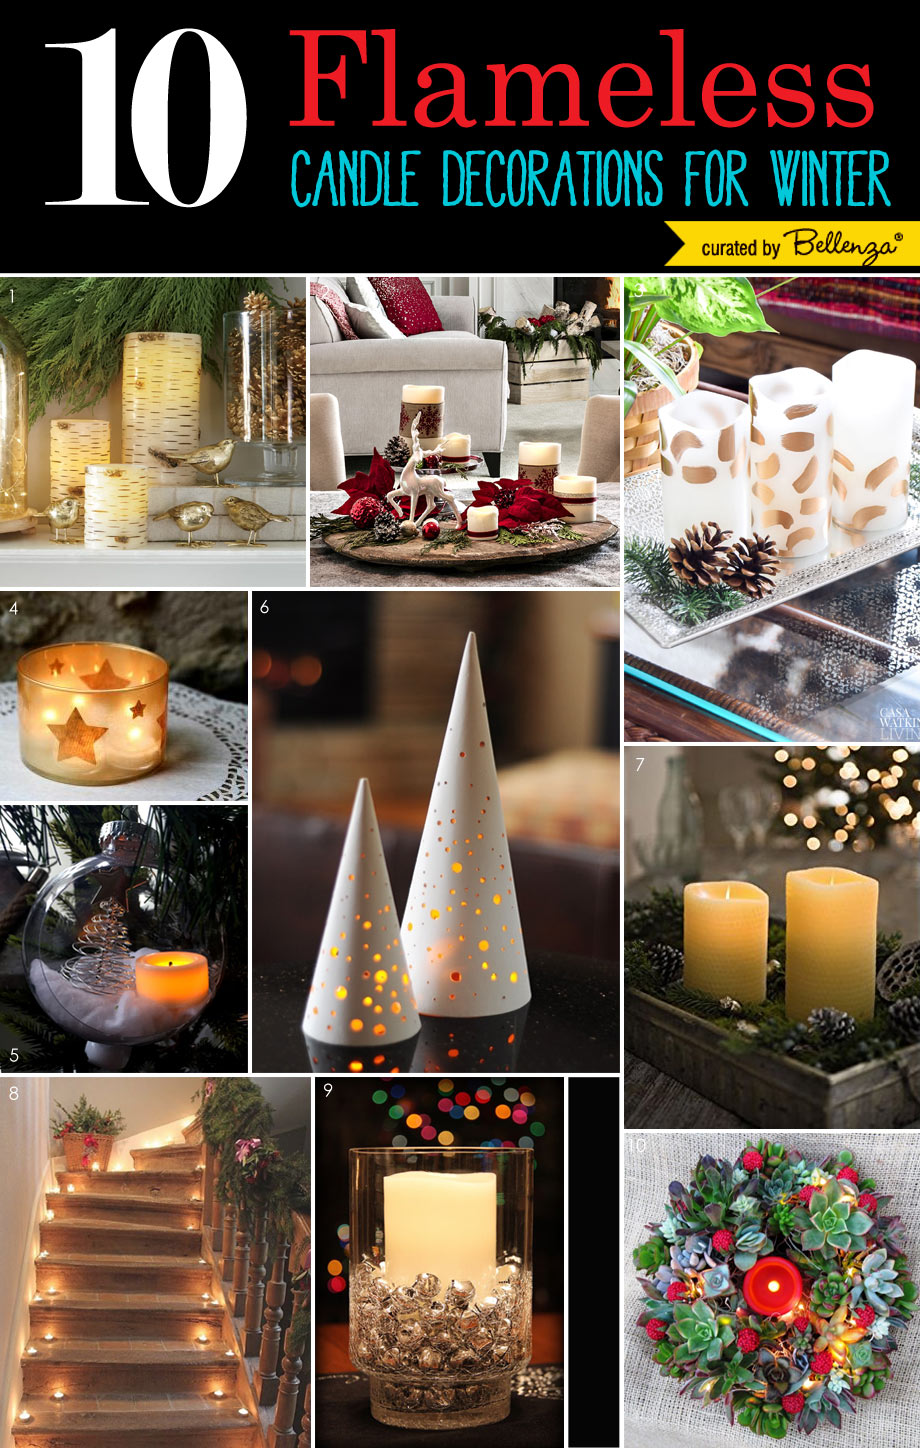 Christmas Decorations using Winter holiday and flameless-candles